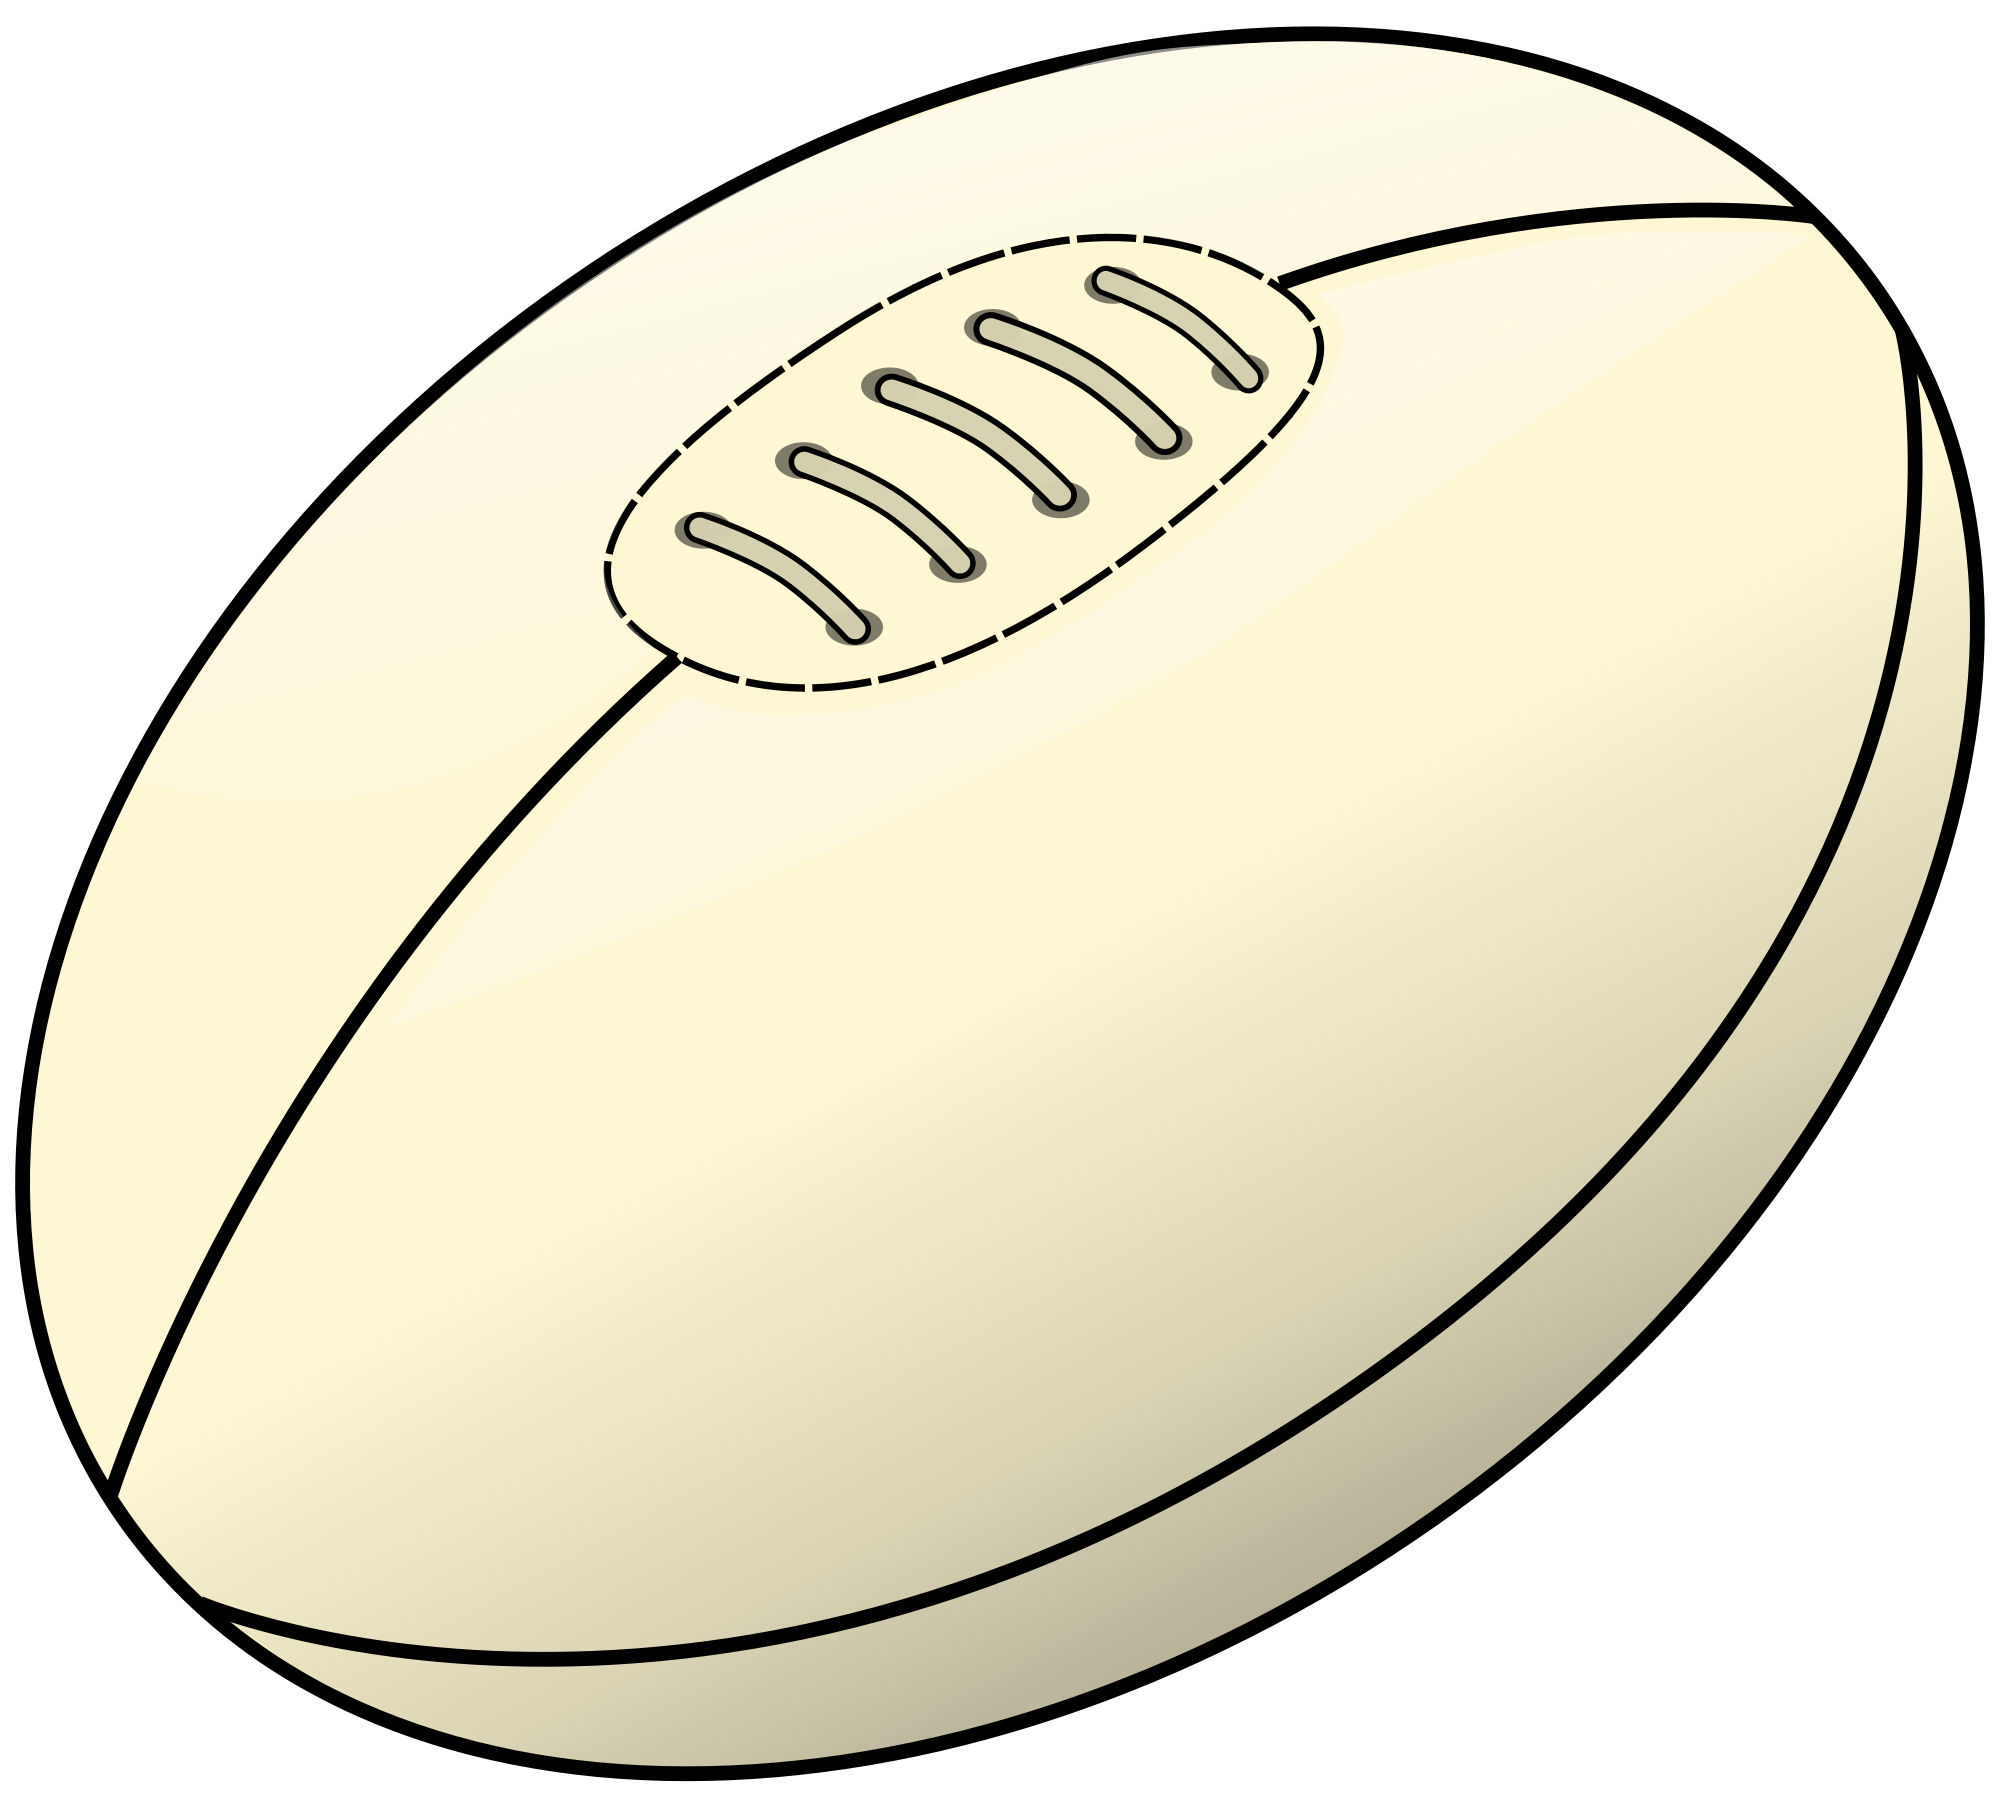 Hammer clipart ball.  collection of rugby